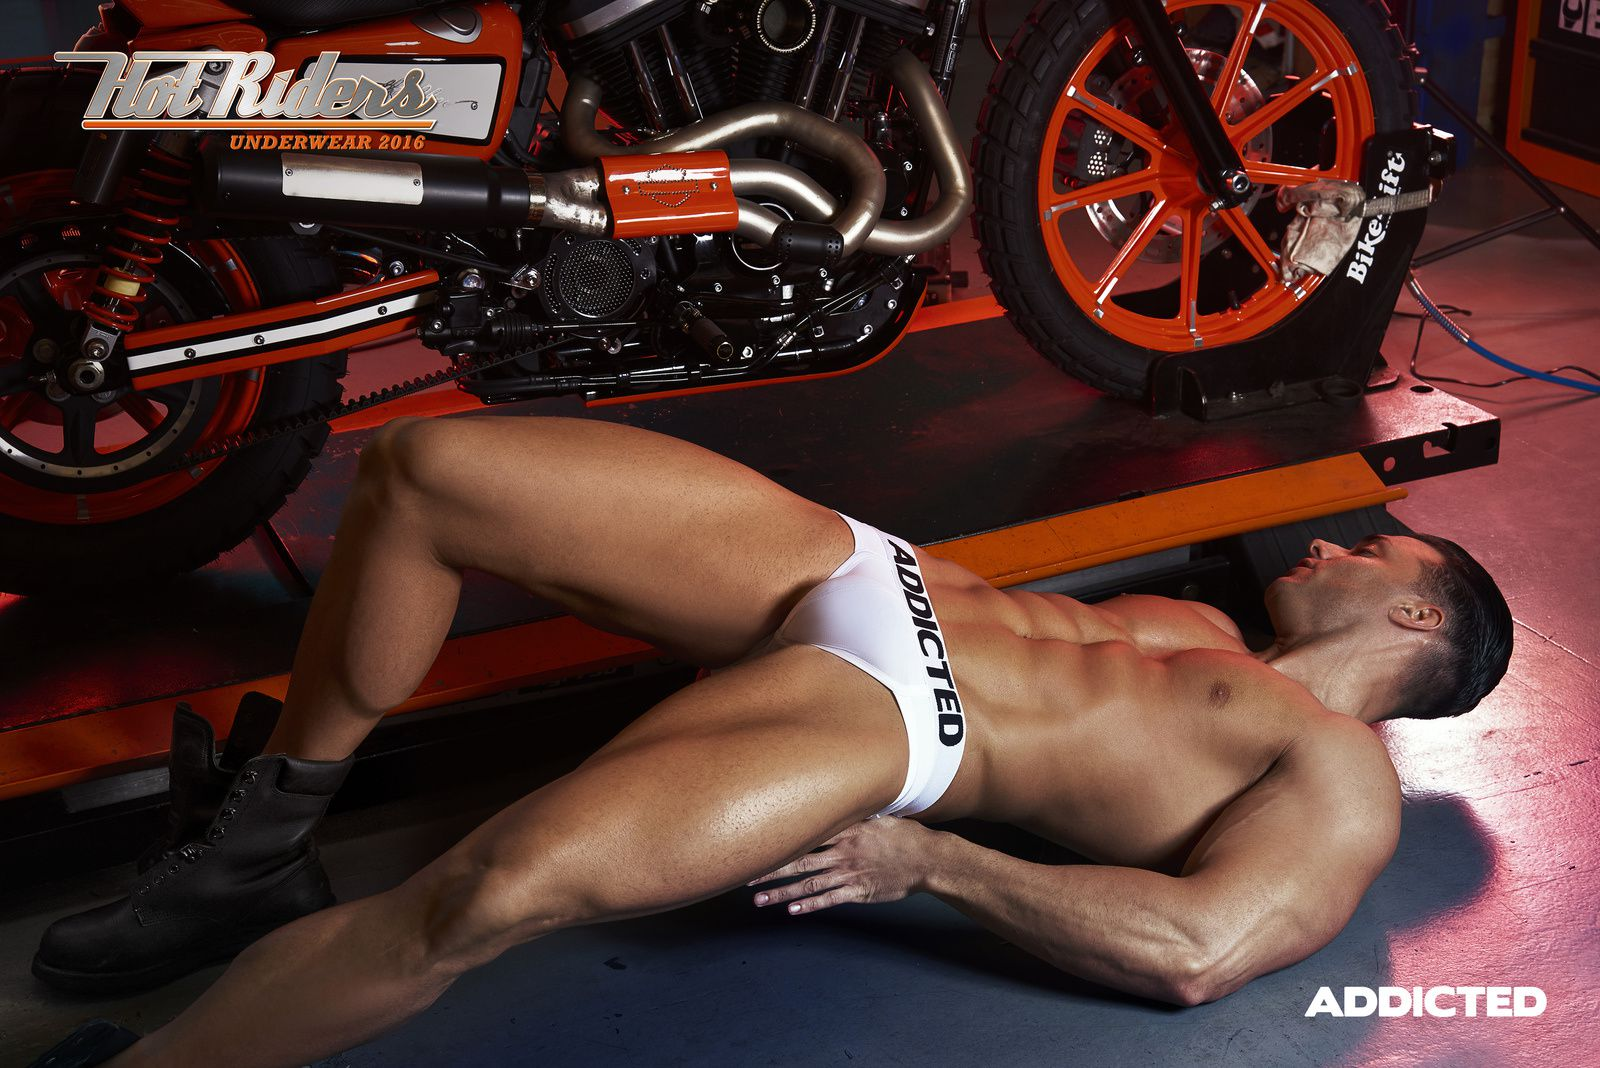 Addicted : HOT RIDERS 2016